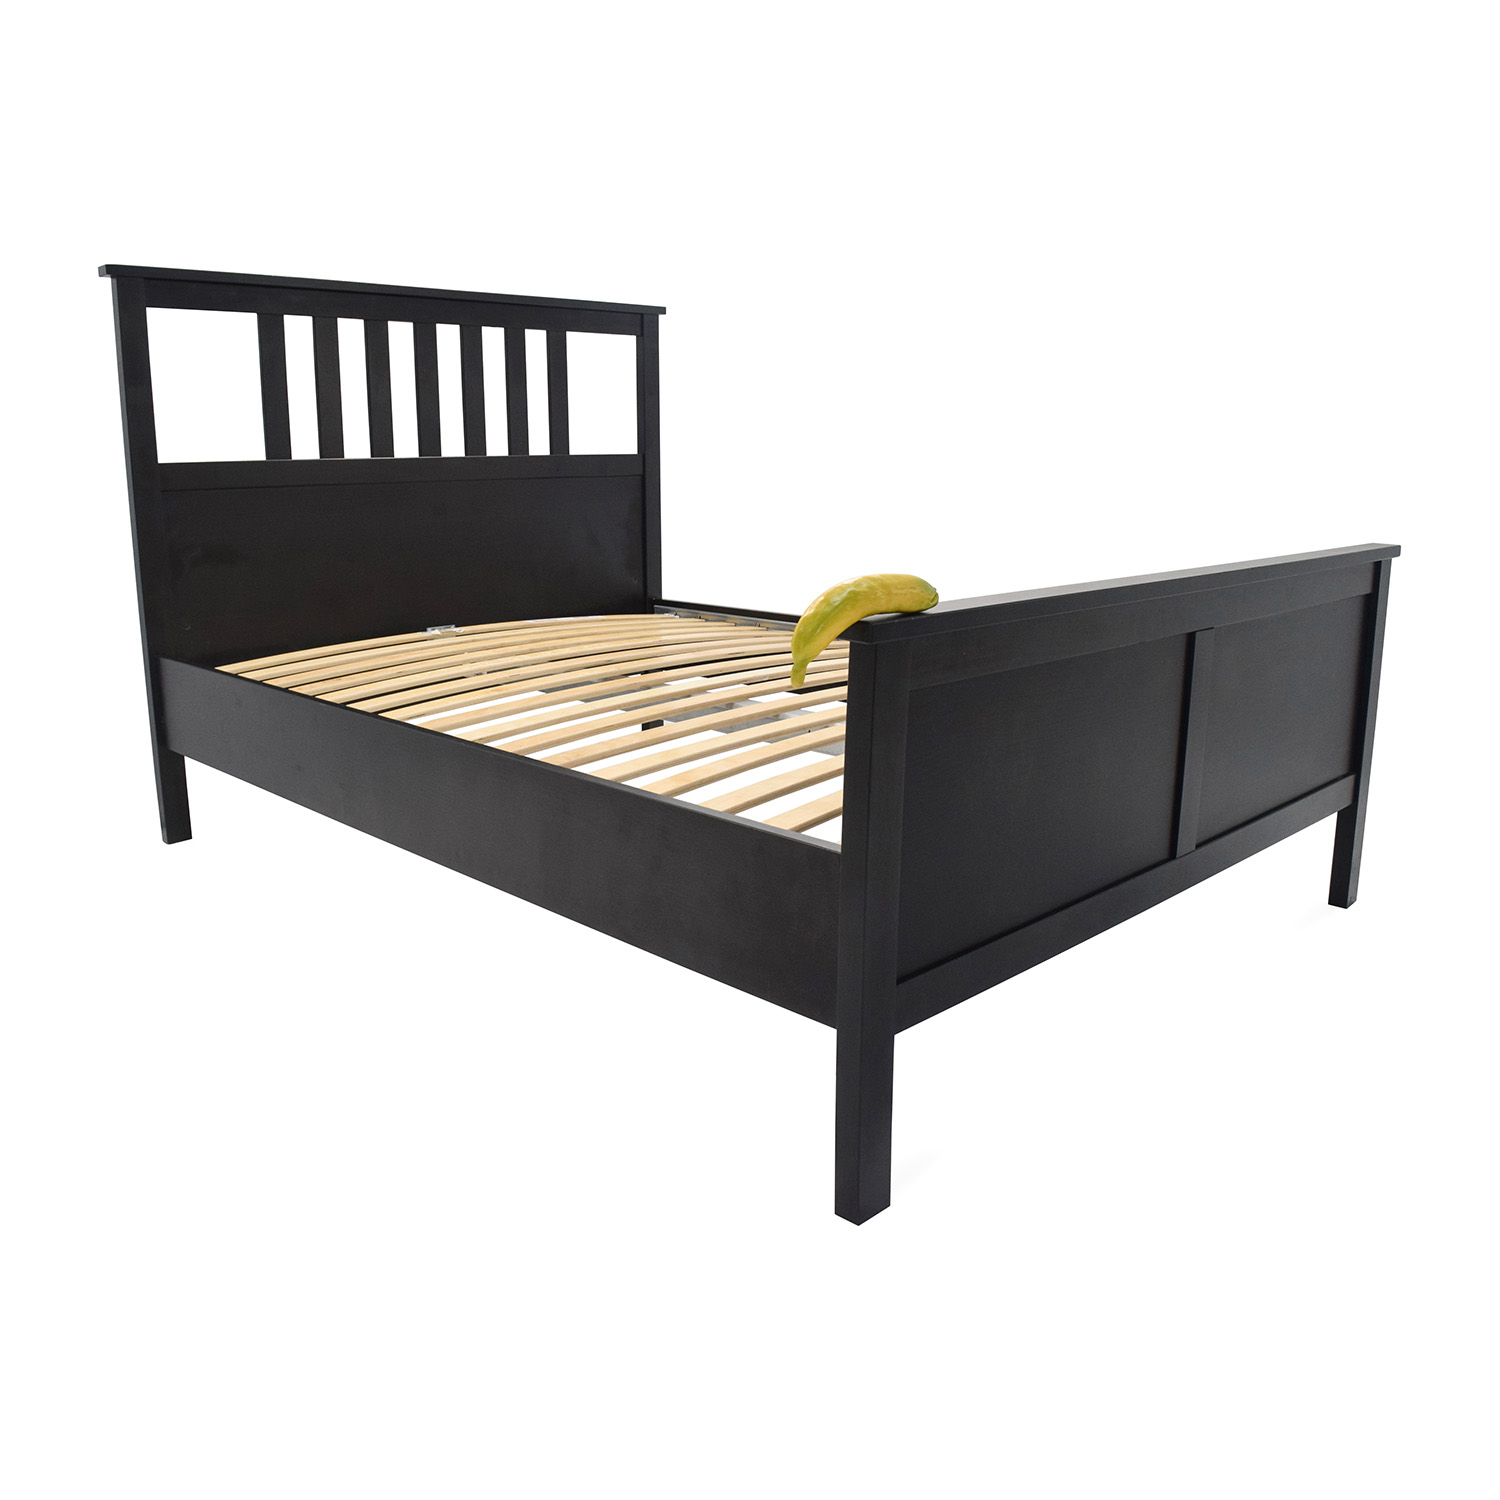 57 off ikea queen hemnes bed frame beds for Queen size bed ikea